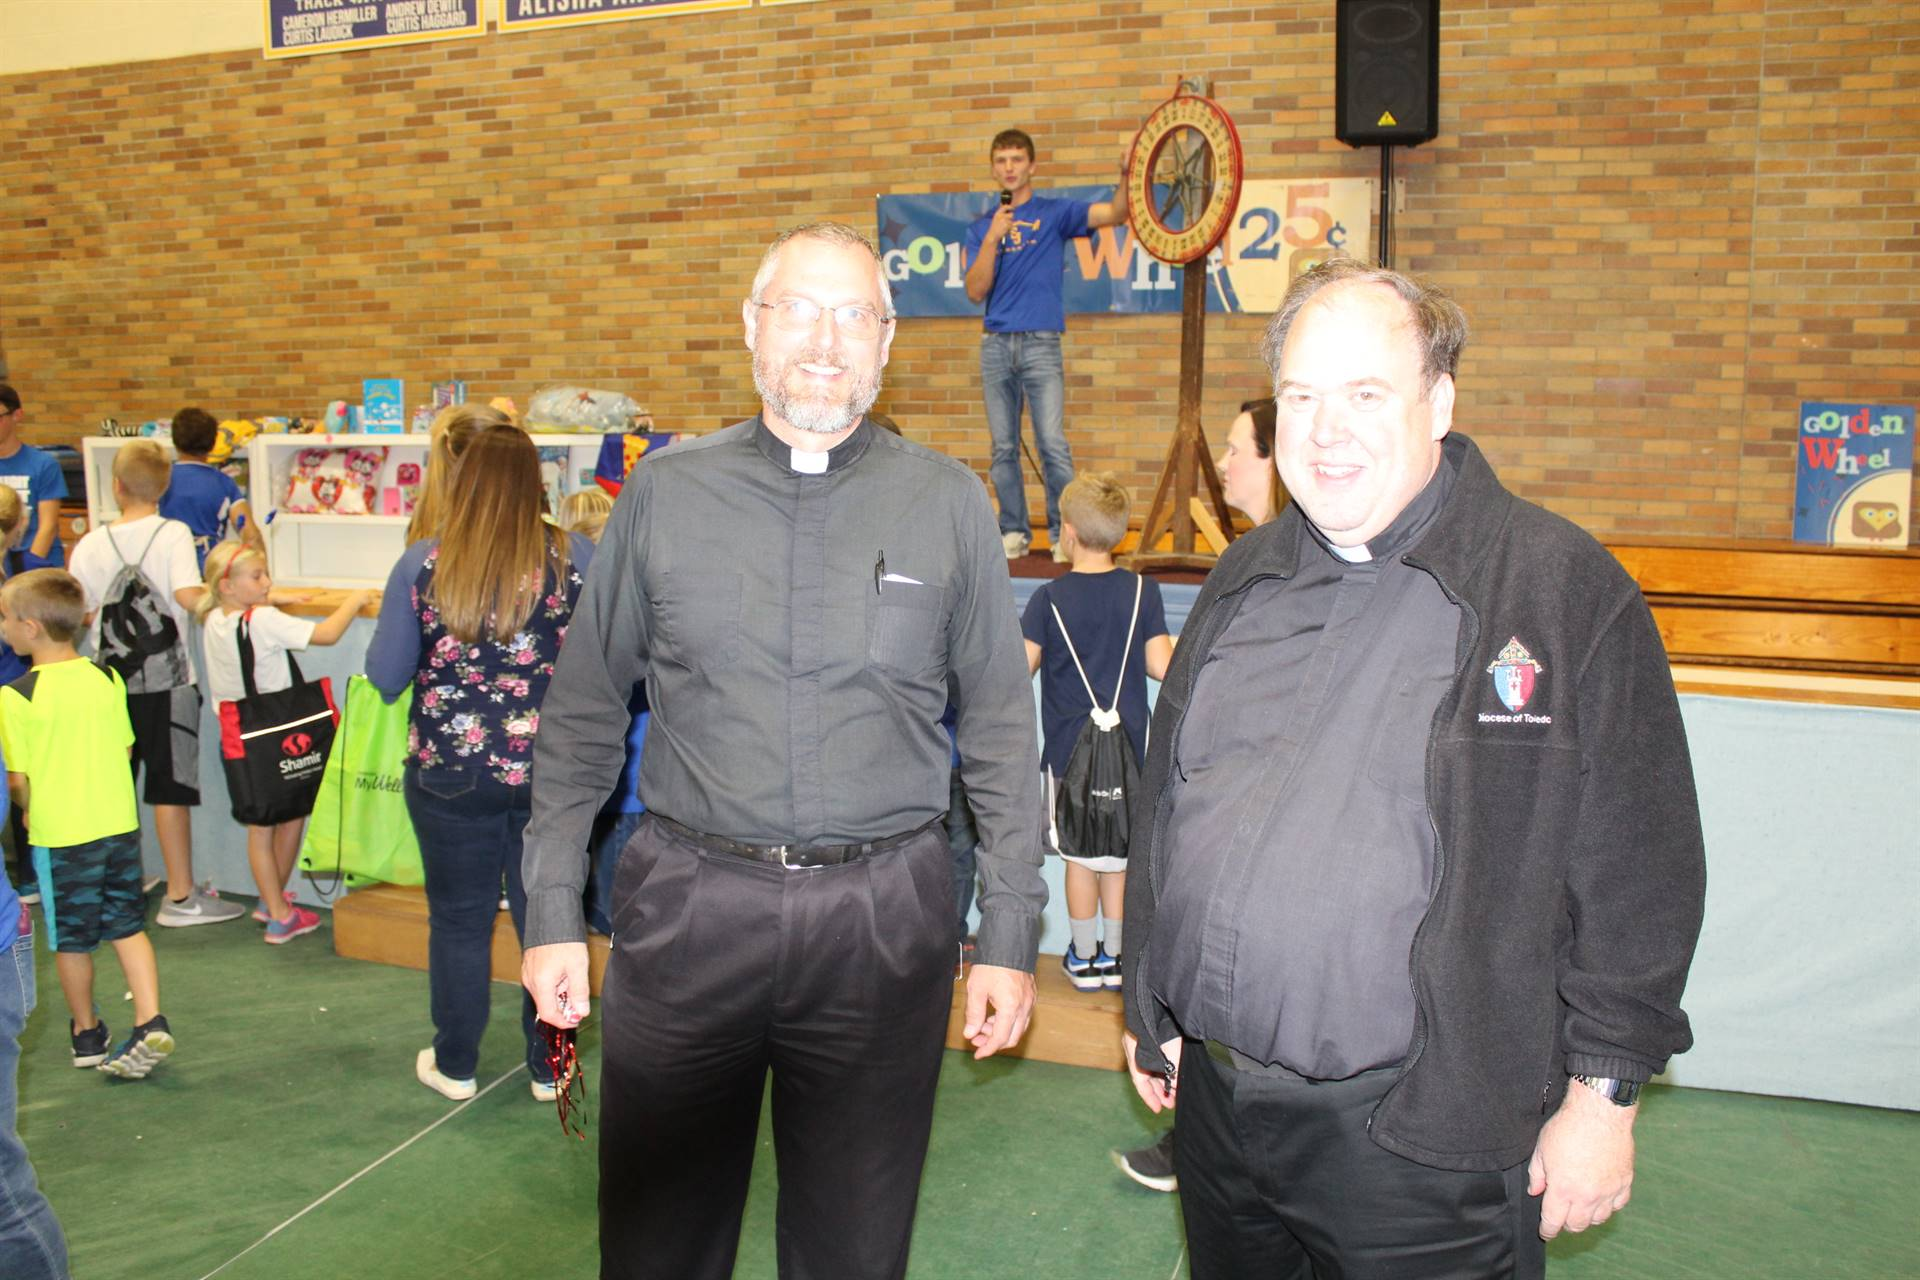 Fr. Taylor and Fr. Walsh